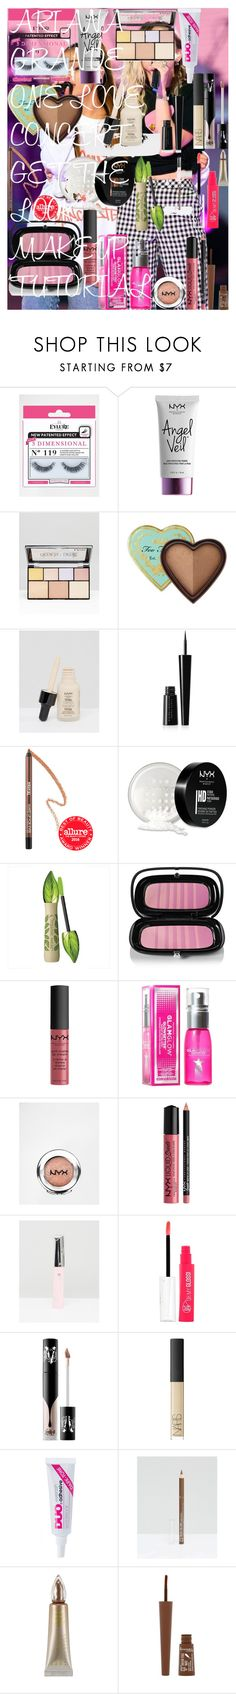 ARIANA GRANDE ONE LOVE CONCERT GET THE LOOK MAKEUP 'TUTORIAL' by oroartye-1 on Polyvore featuring beauty, Kat Von D, Estée Lauder, NARS Cosmetics, Marc Jacobs, Too Faced Cosmetics, MAKE UP FOR EVER, NYX, eylure and Rimmel